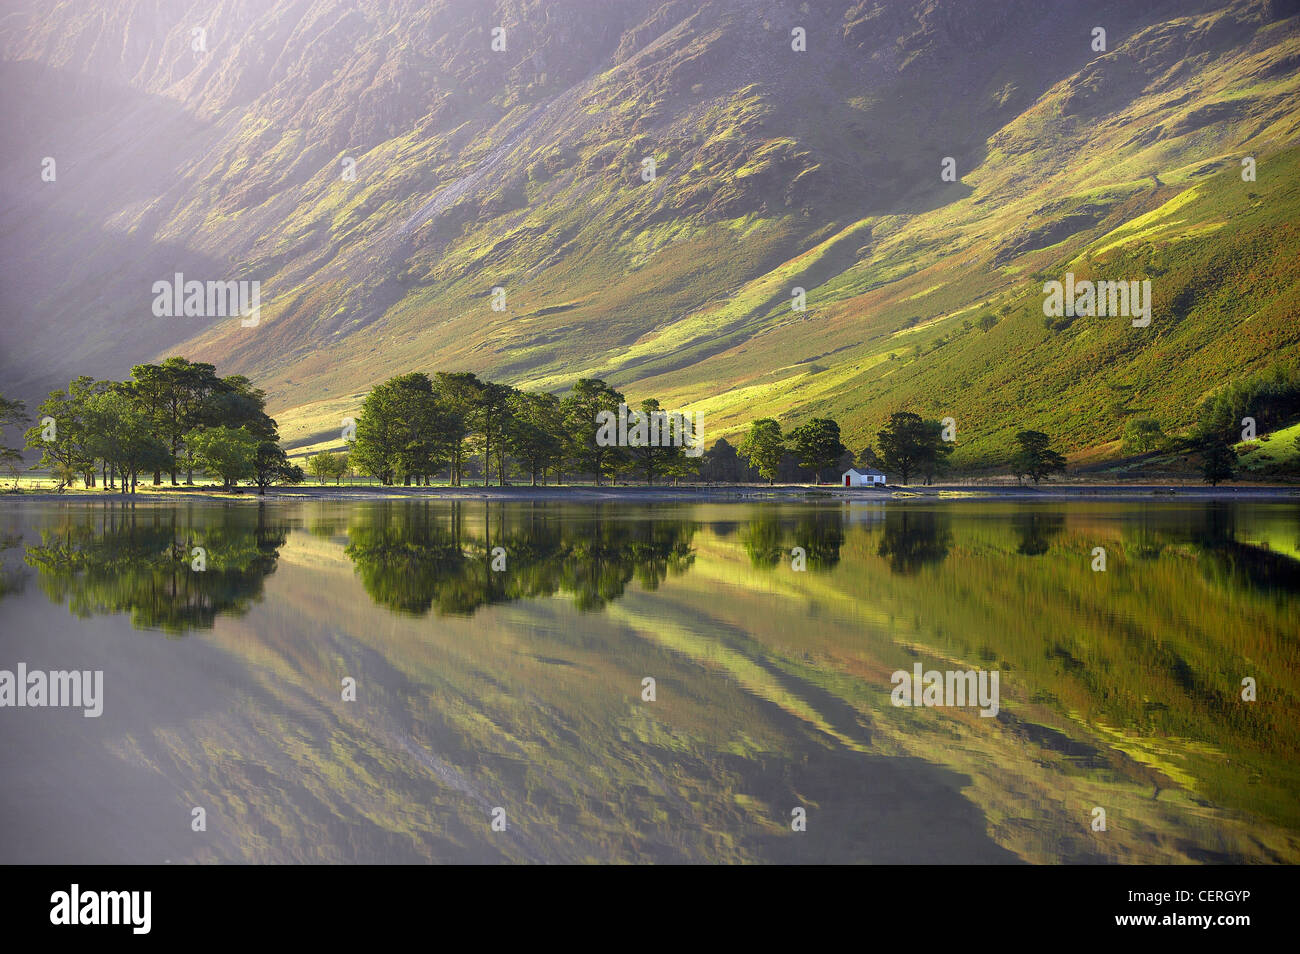 reflections on the shore of Buttermere at dawn, Cumbria, Lakes District, Cumbria, England, UK Stock Photo